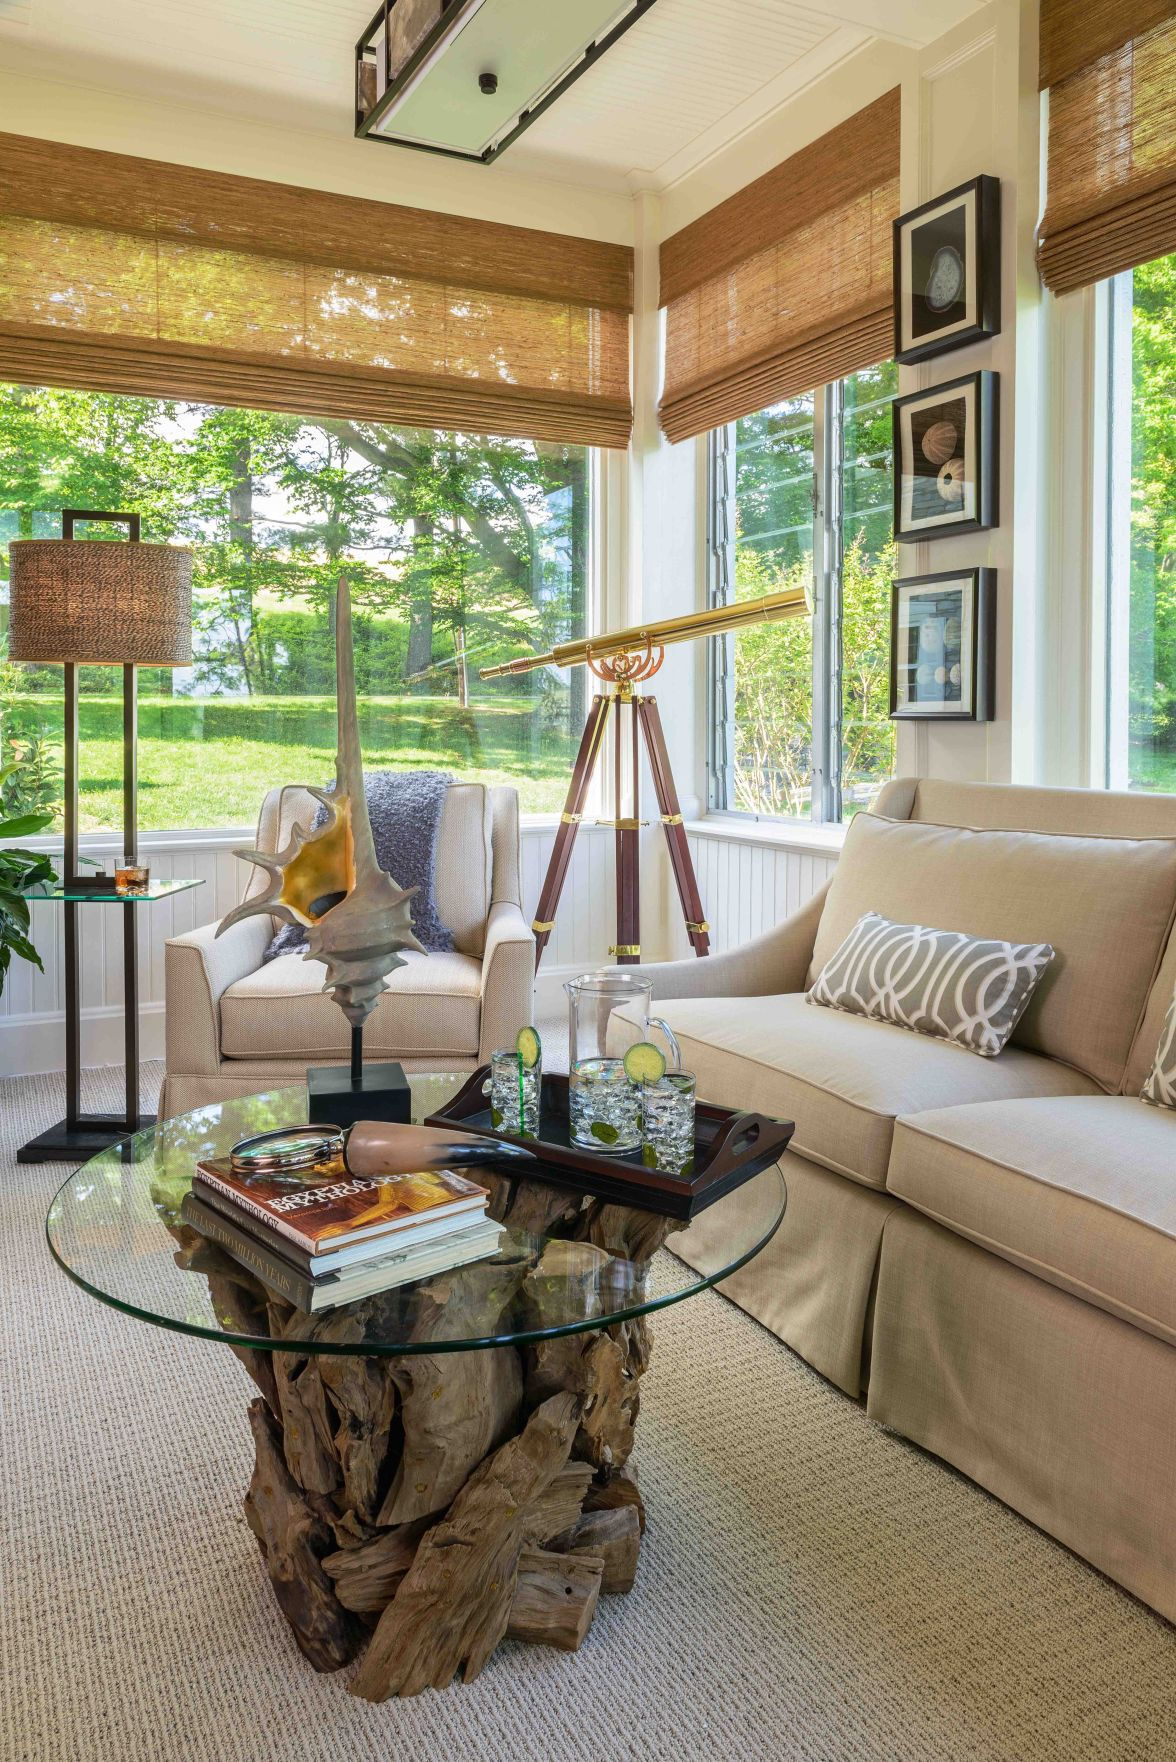 Home trends and tips from the experts in St. John